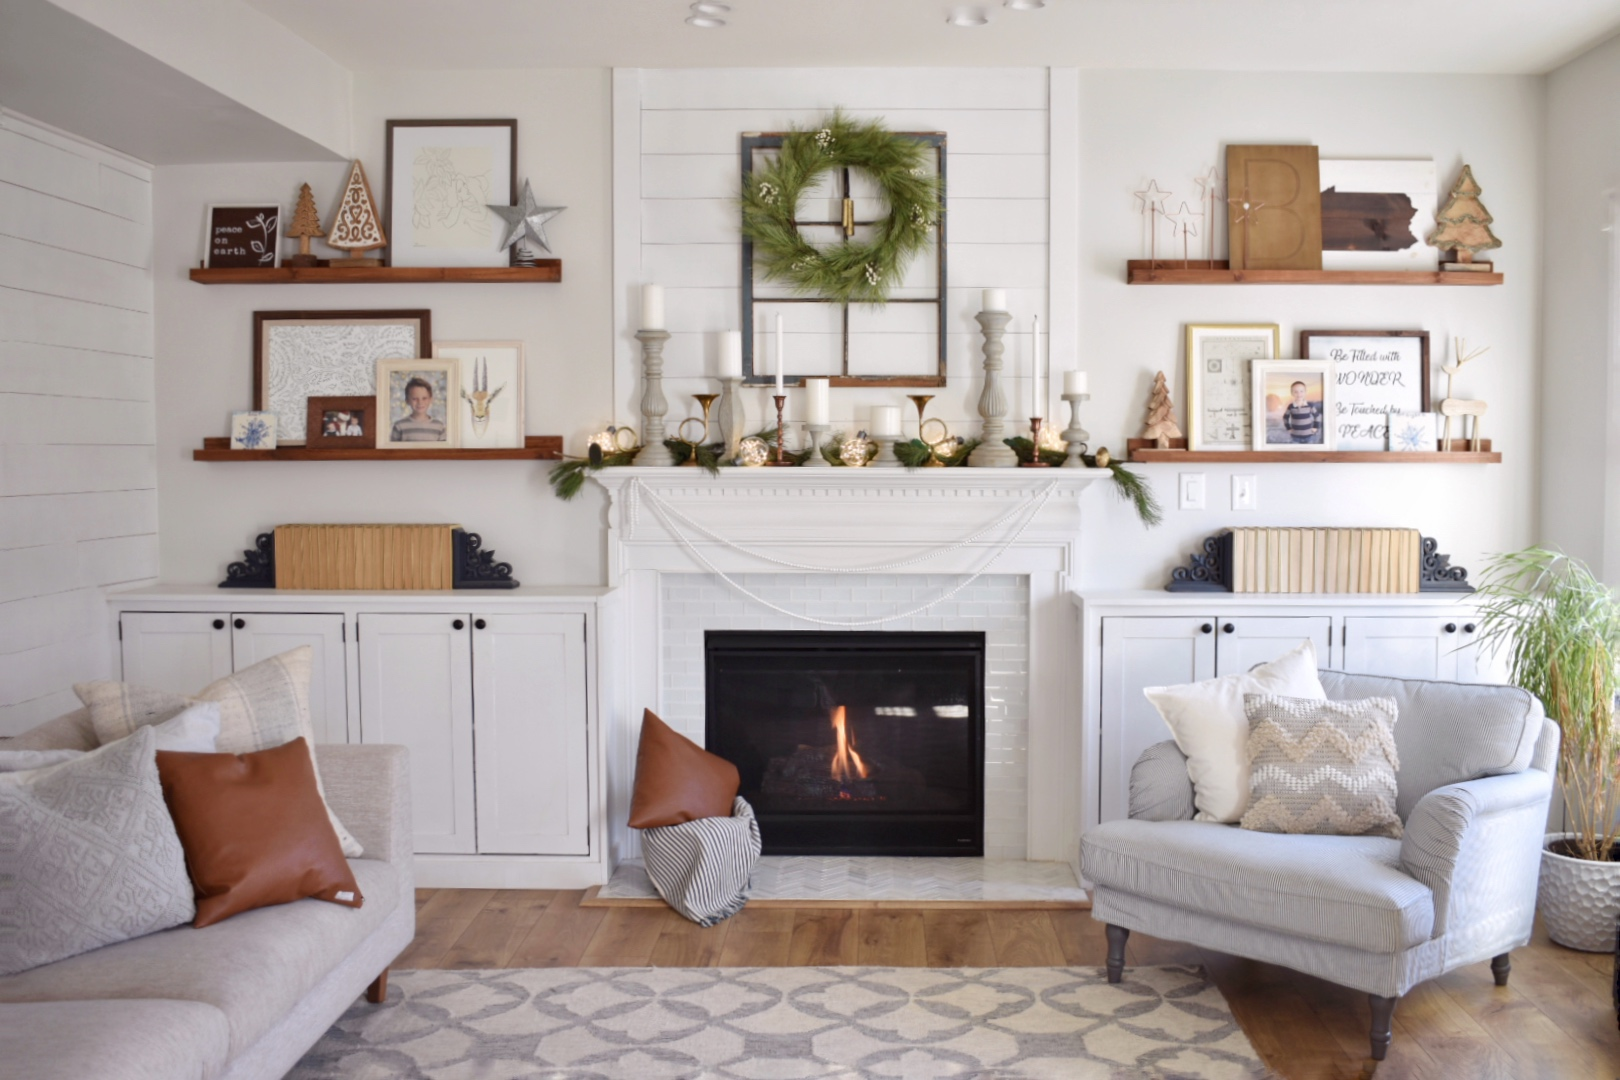 12 Quick and Easy Ways to Decorate for the Holidays